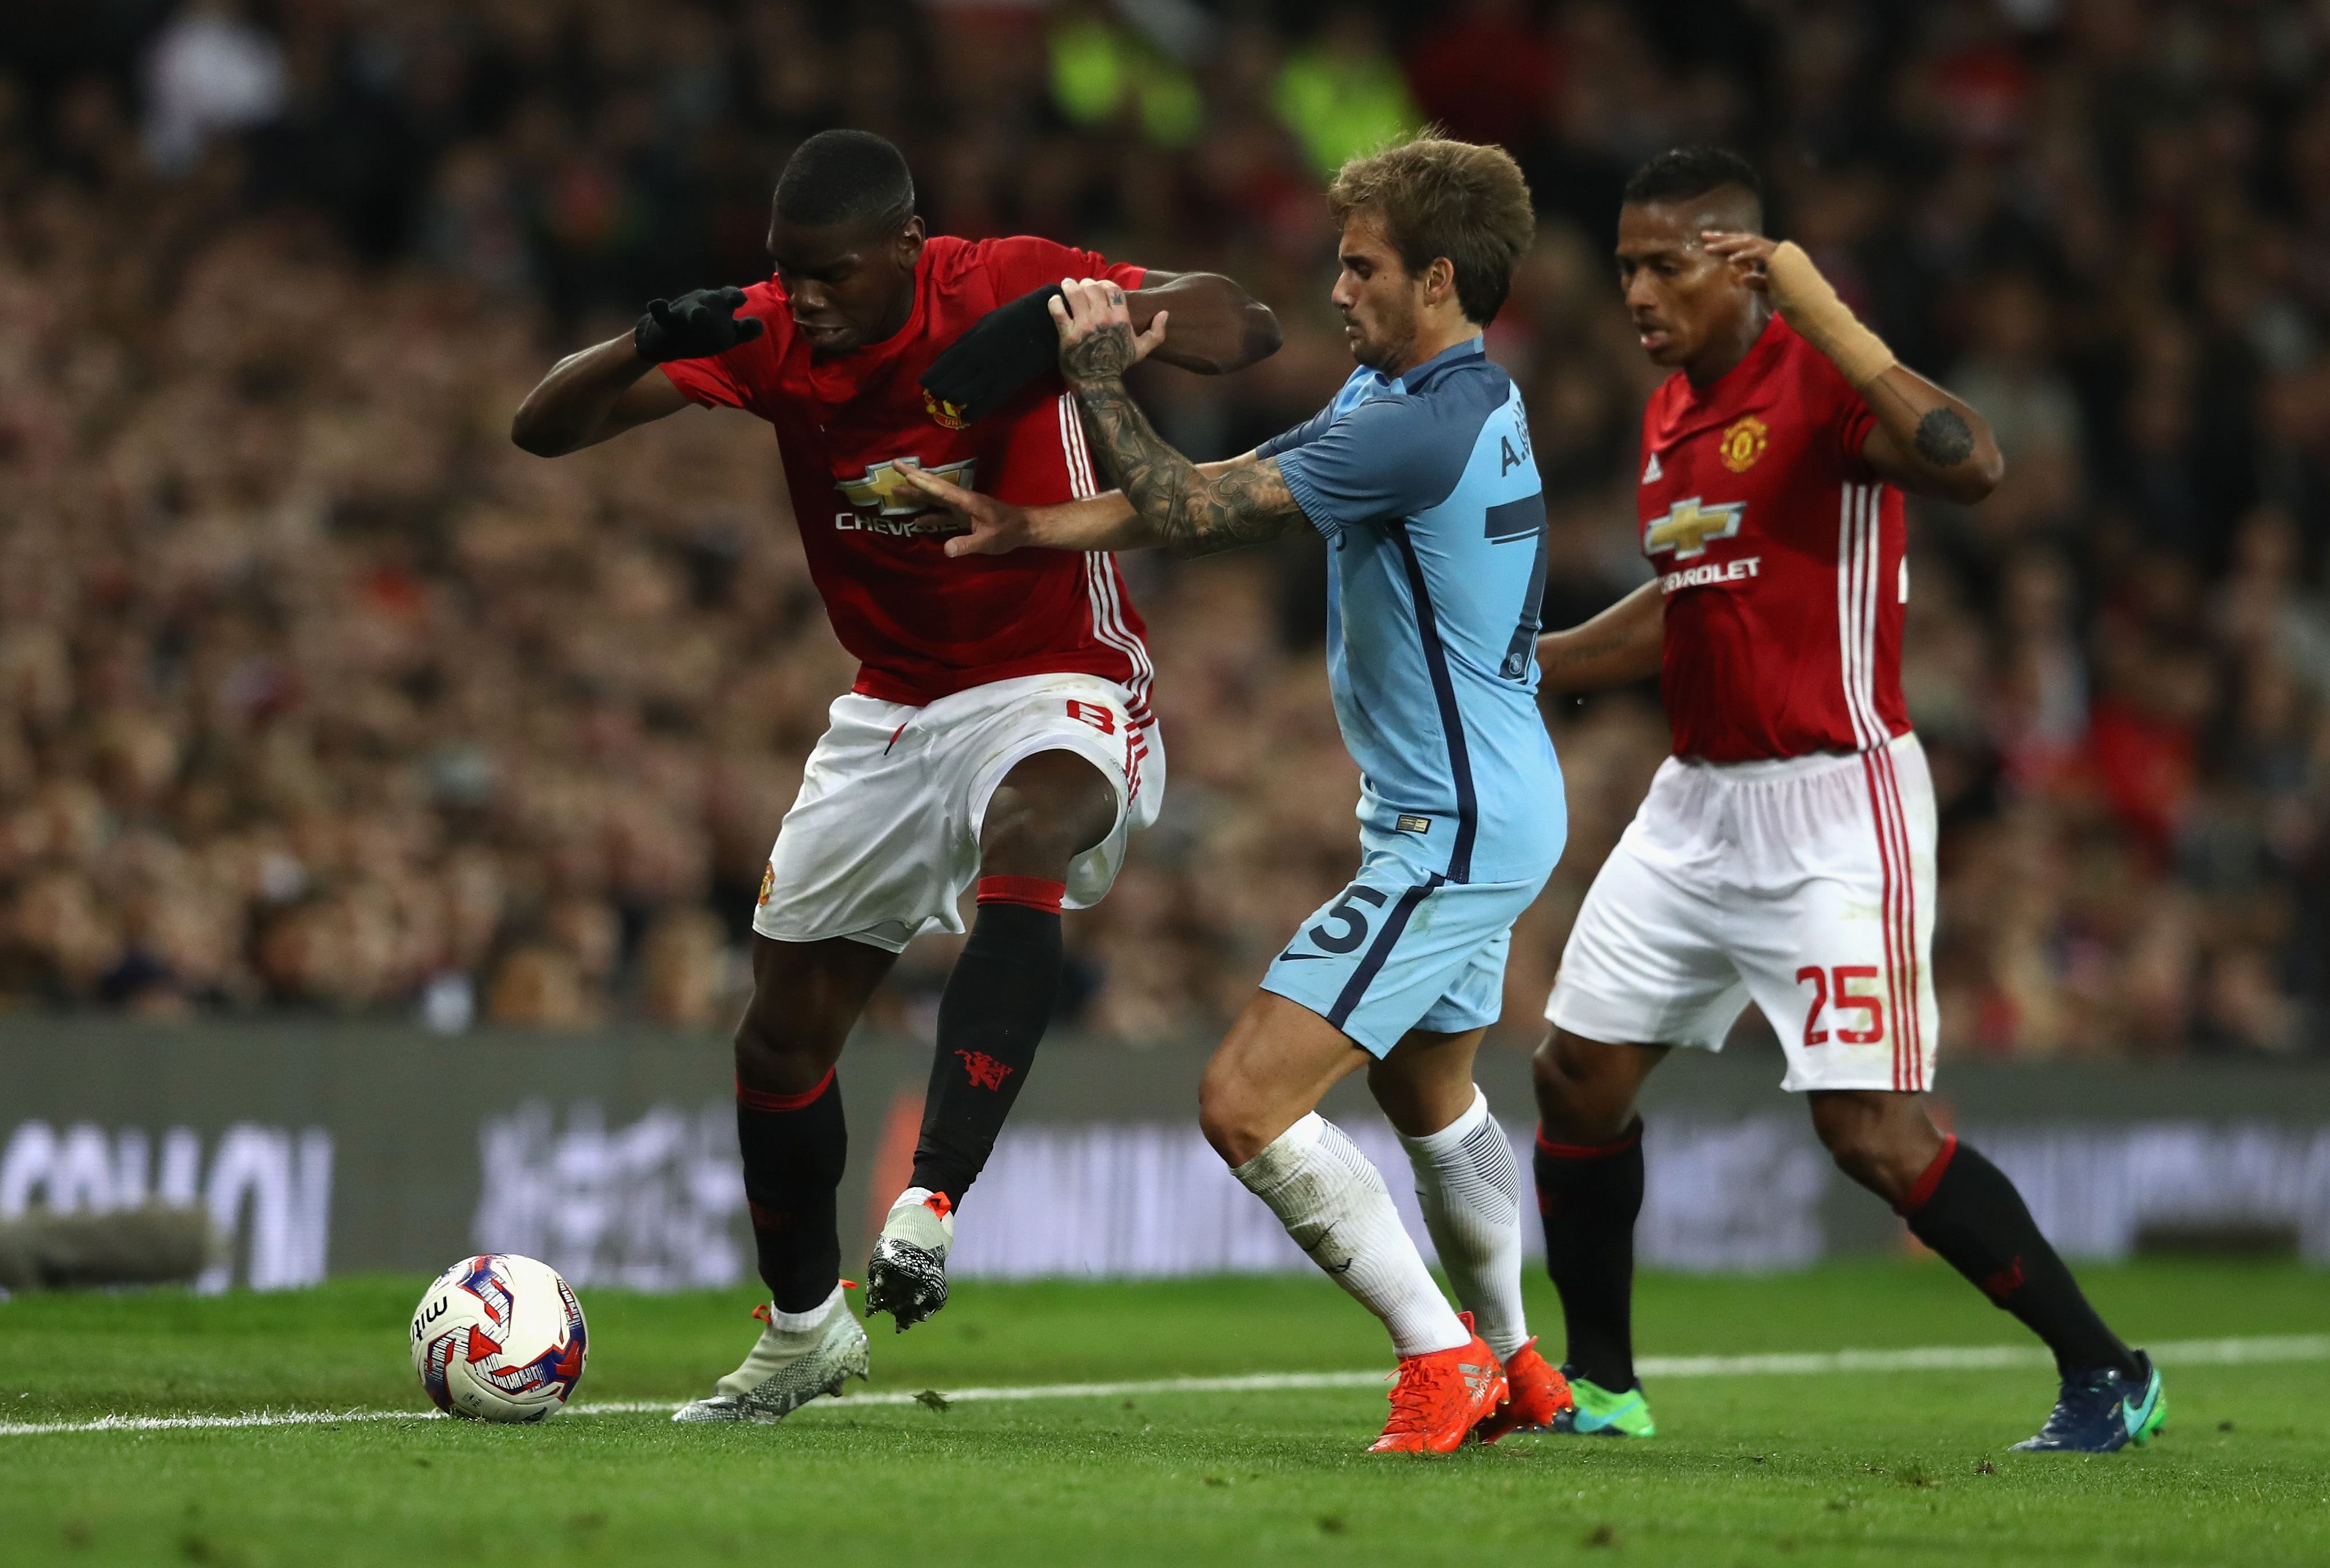 618575072-manchester-united-v-manchester-city-efl-cup-fourth-round.jpg